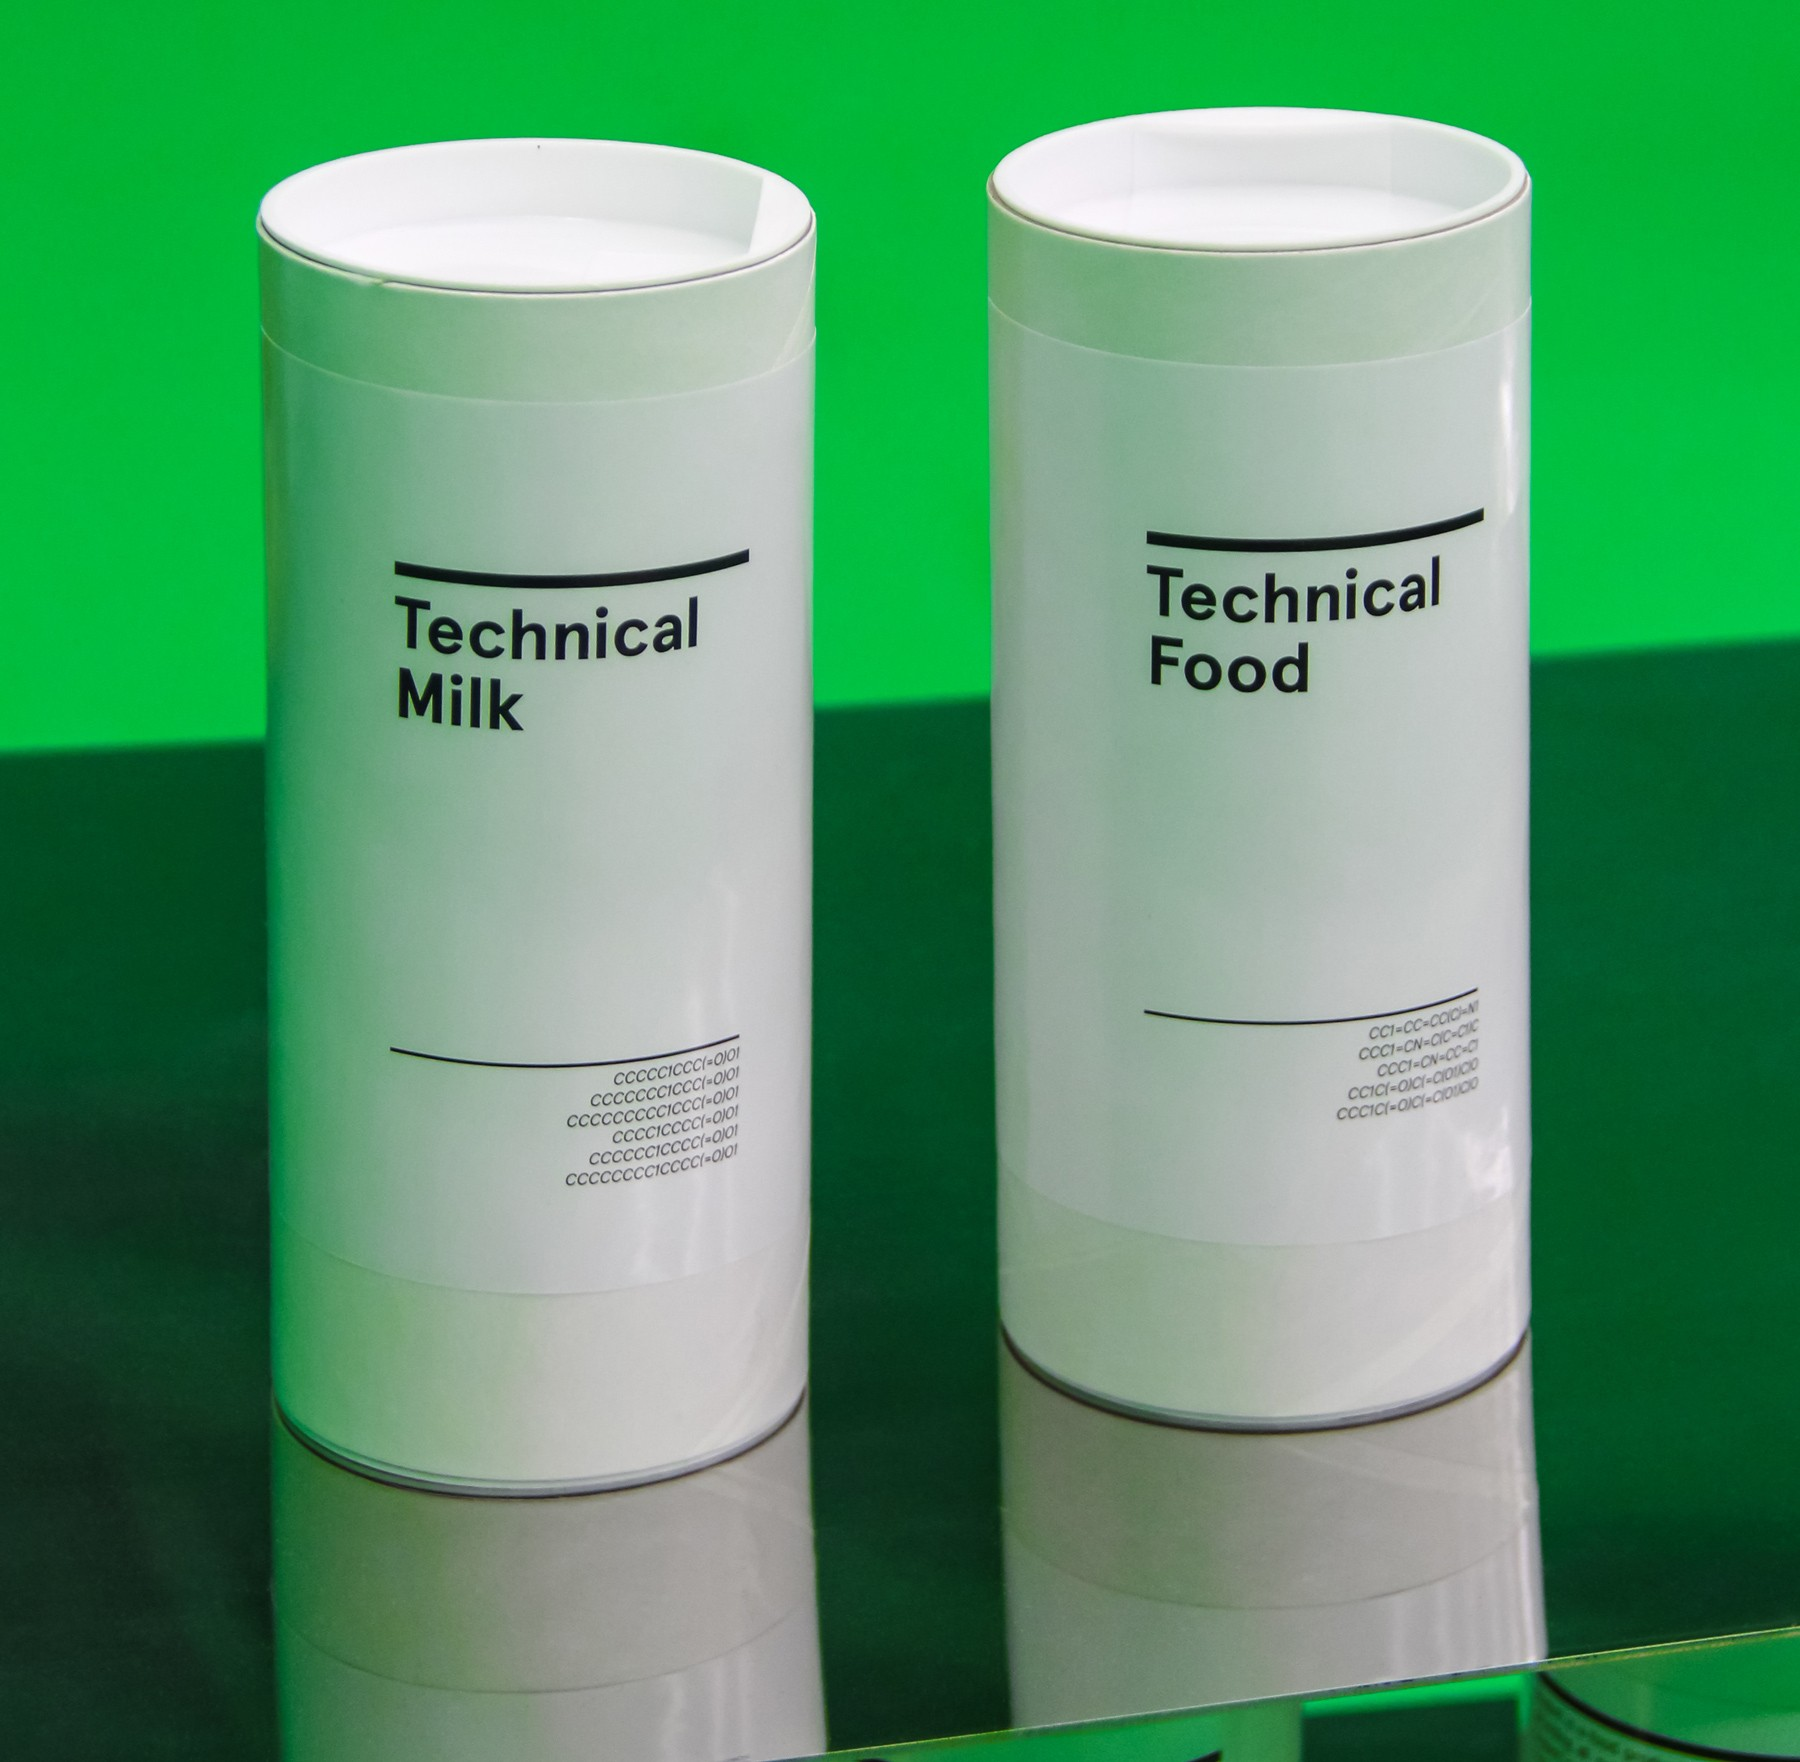 Technical Milk and Technical Food